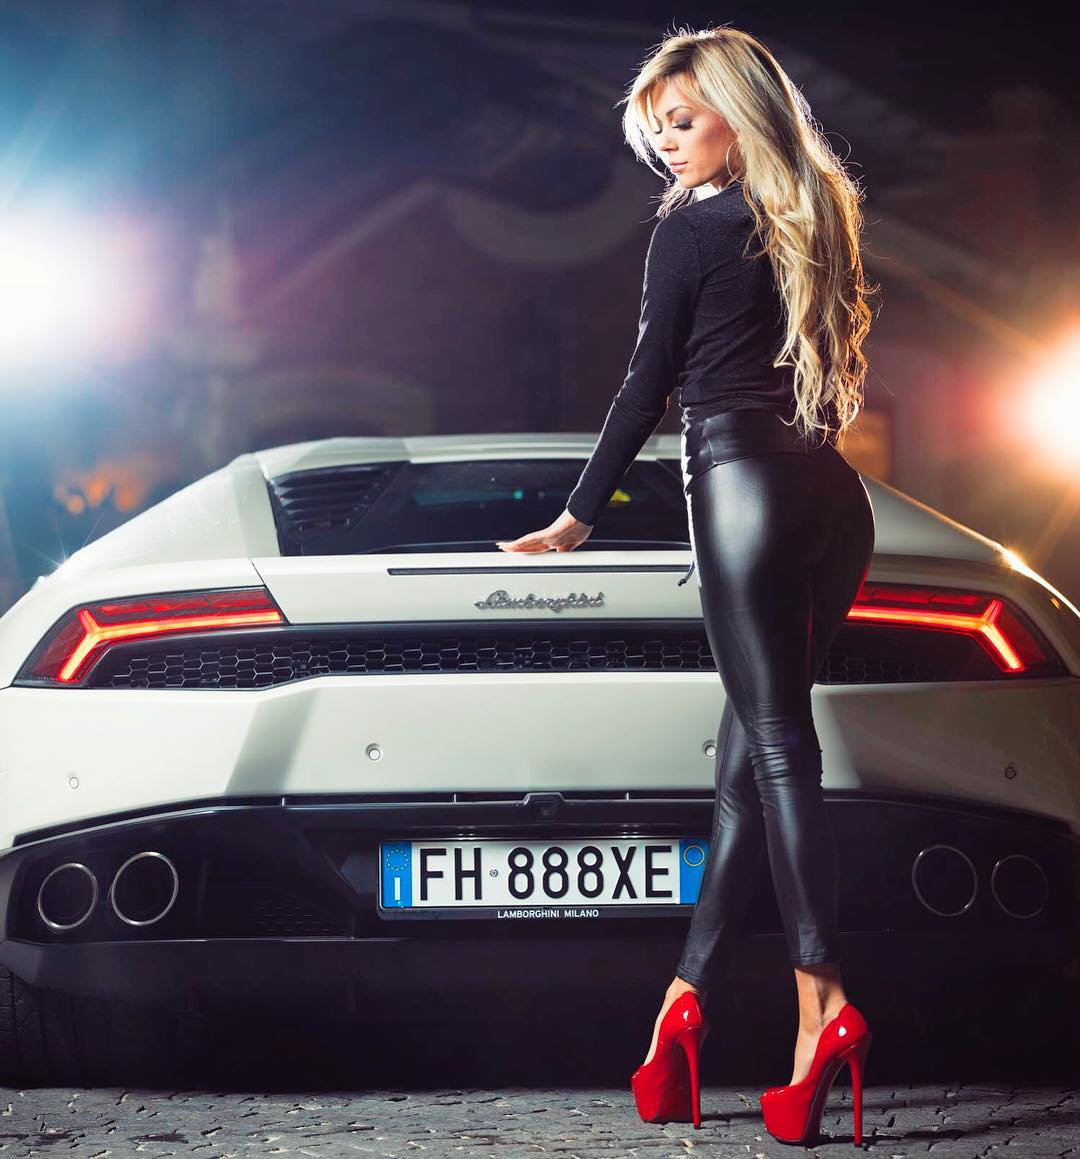 Ludovica Pagani Car Modeling In High Heels - Ludovica Pagani Car Modeling In High Heels